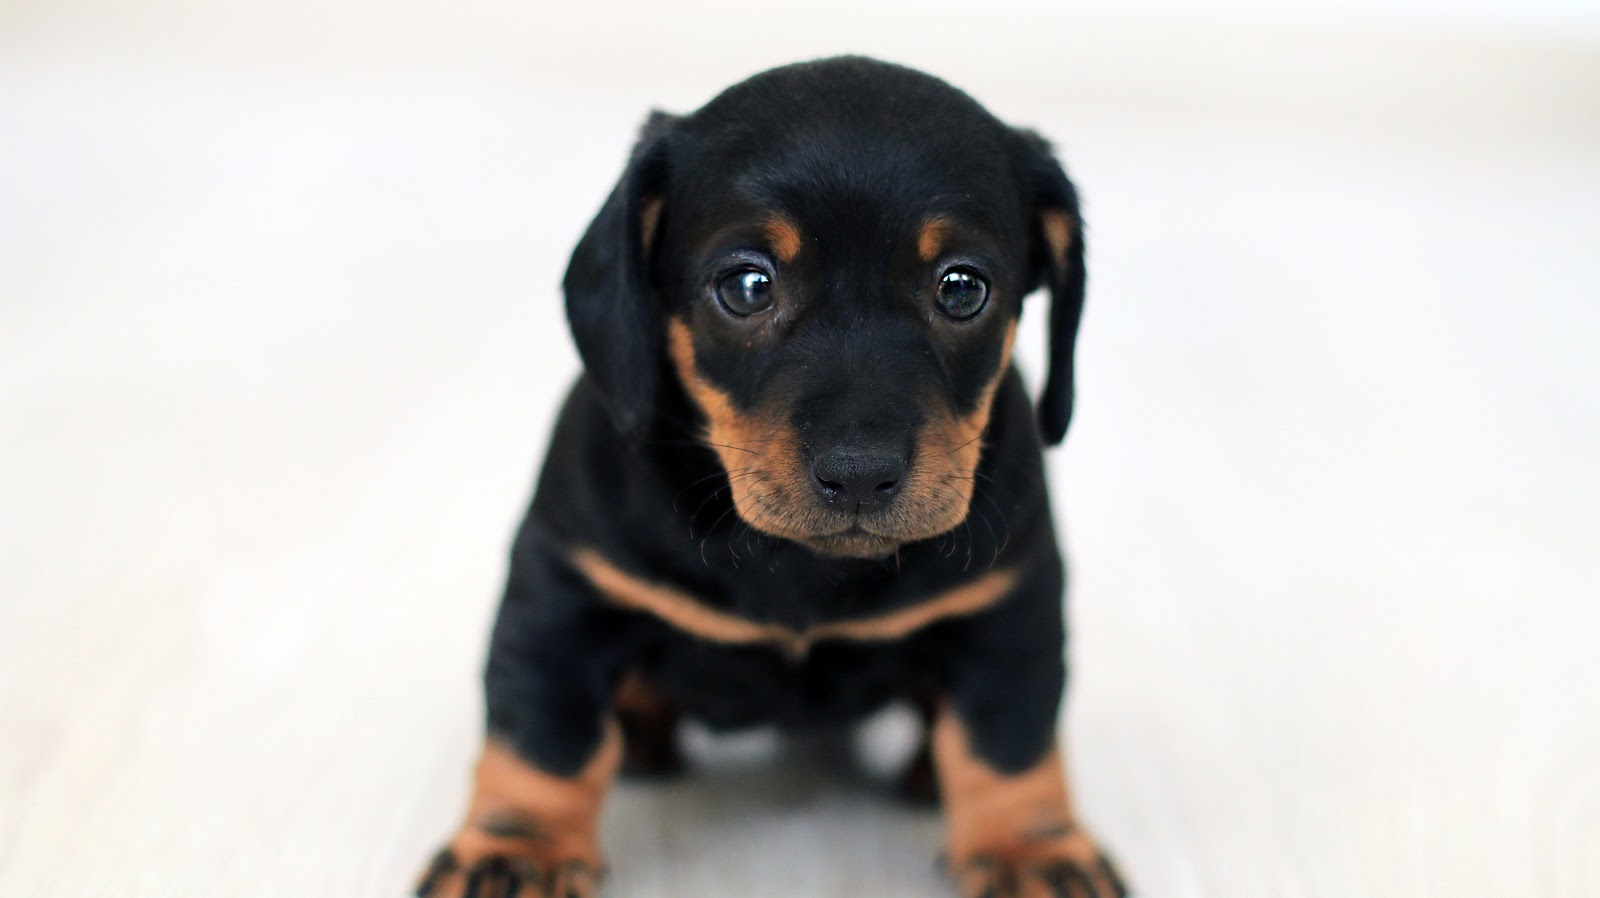 close-up-photography-of-black-and-tan-puppy-dog-pictures